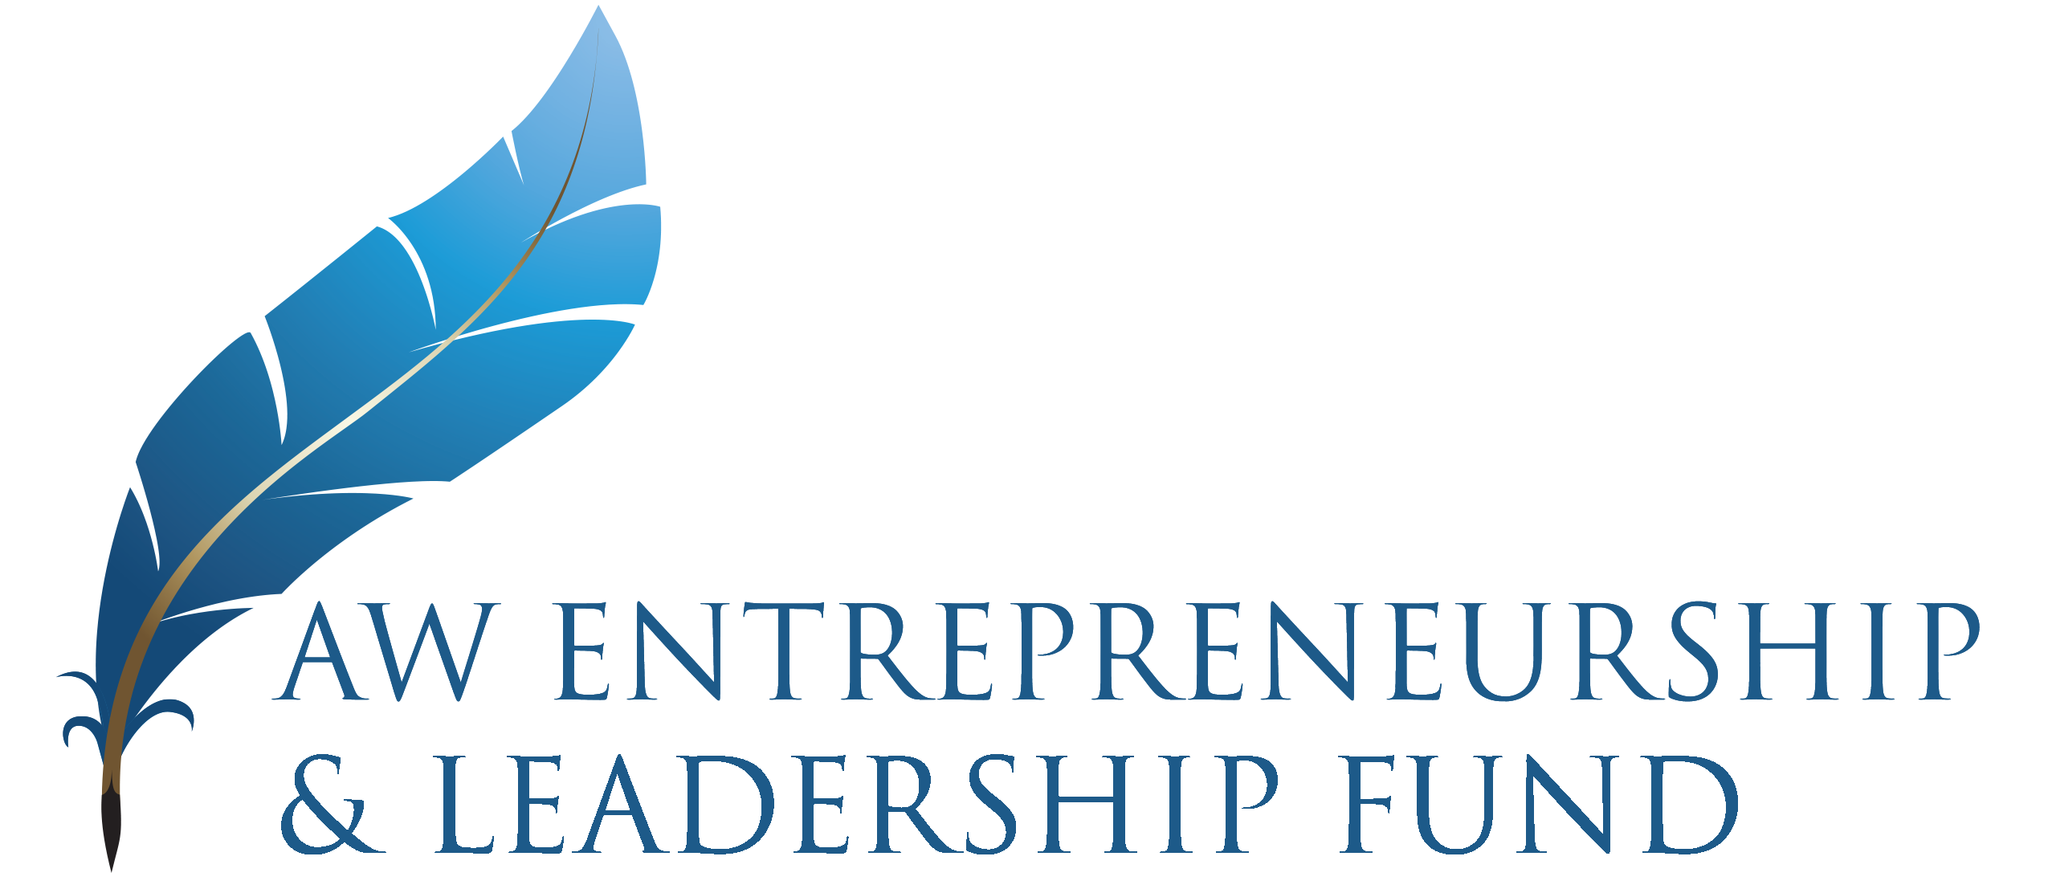 Arthur Wylie Entrepreneur and Leadership Fund Logo